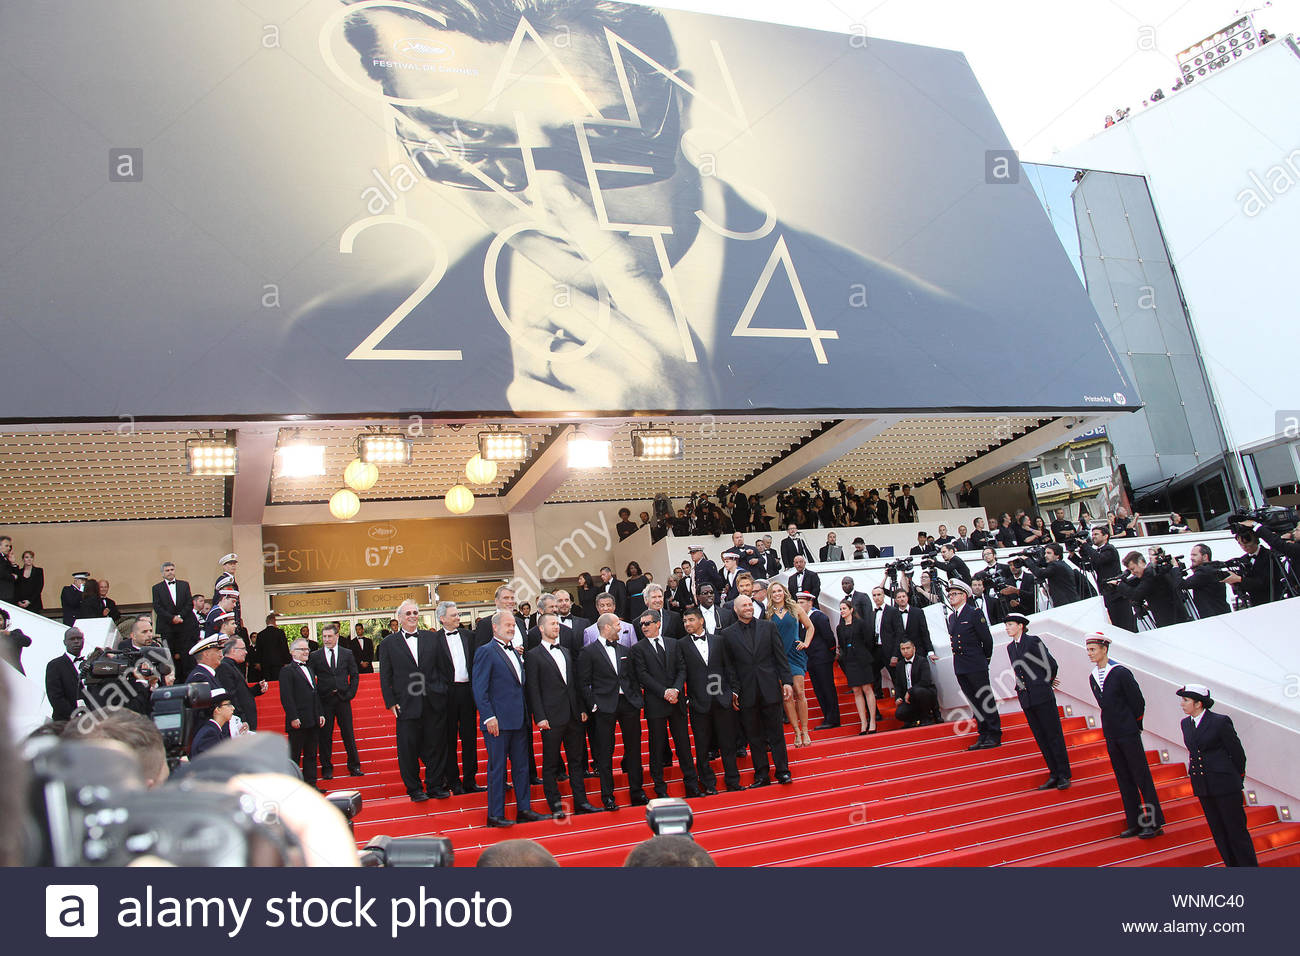 Cannes, France - The cast of 'Expendables 3' at the 'The Homesman' premiere during the 67th Annual Cannes Film Festival. AKM-GSI May 18, 2014 Stock Photo